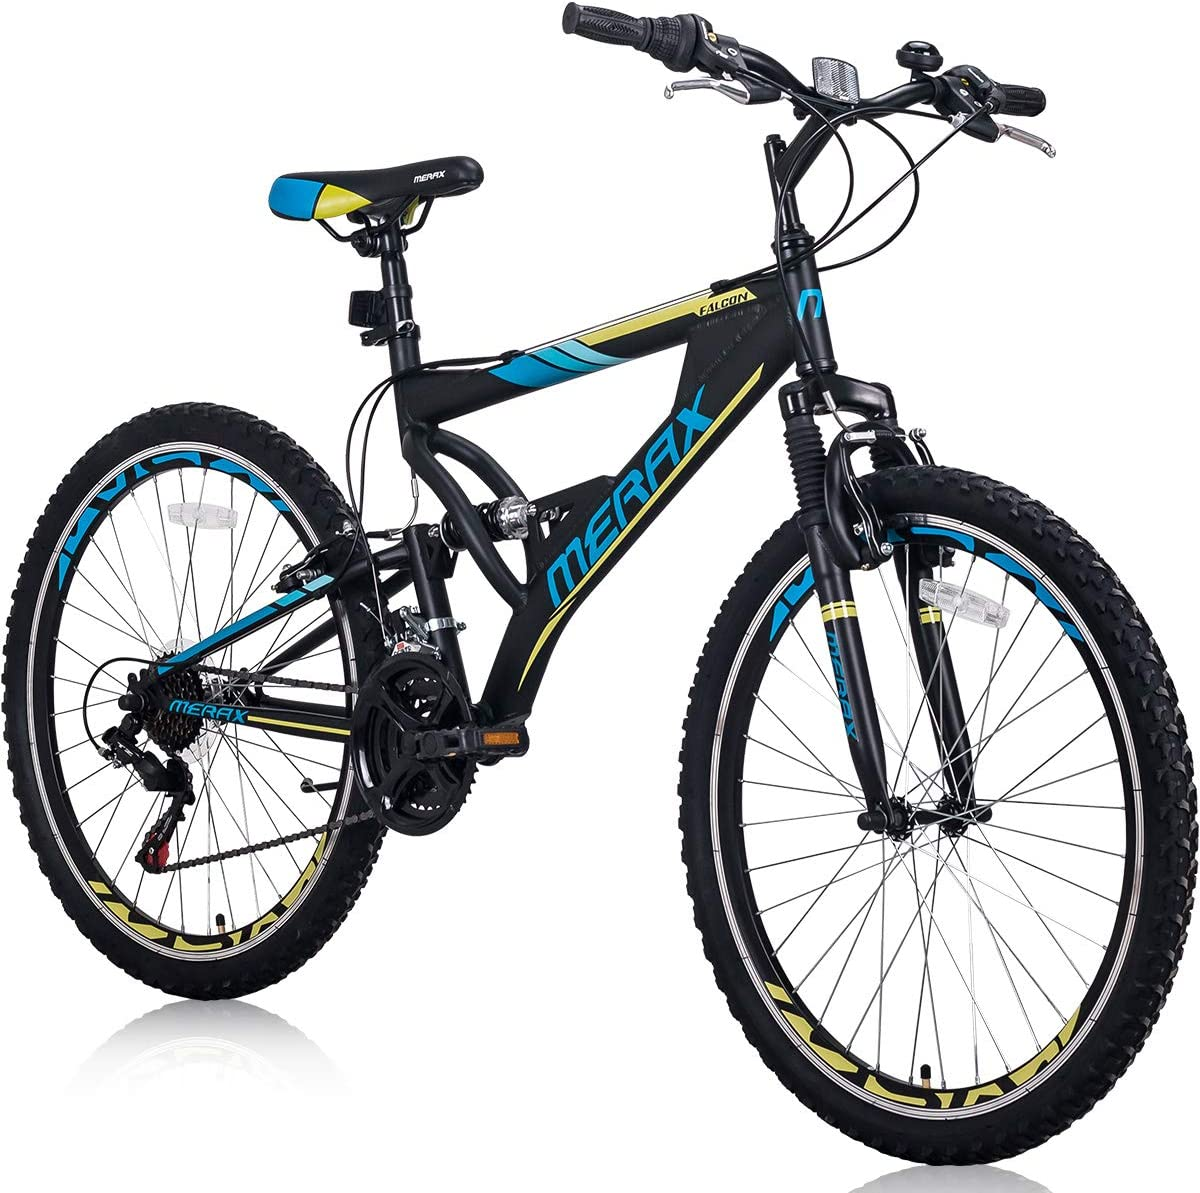 Merax Mountain Bike, Front Suspension, 24-Speed, 26-inch Wheel with Disc Brake